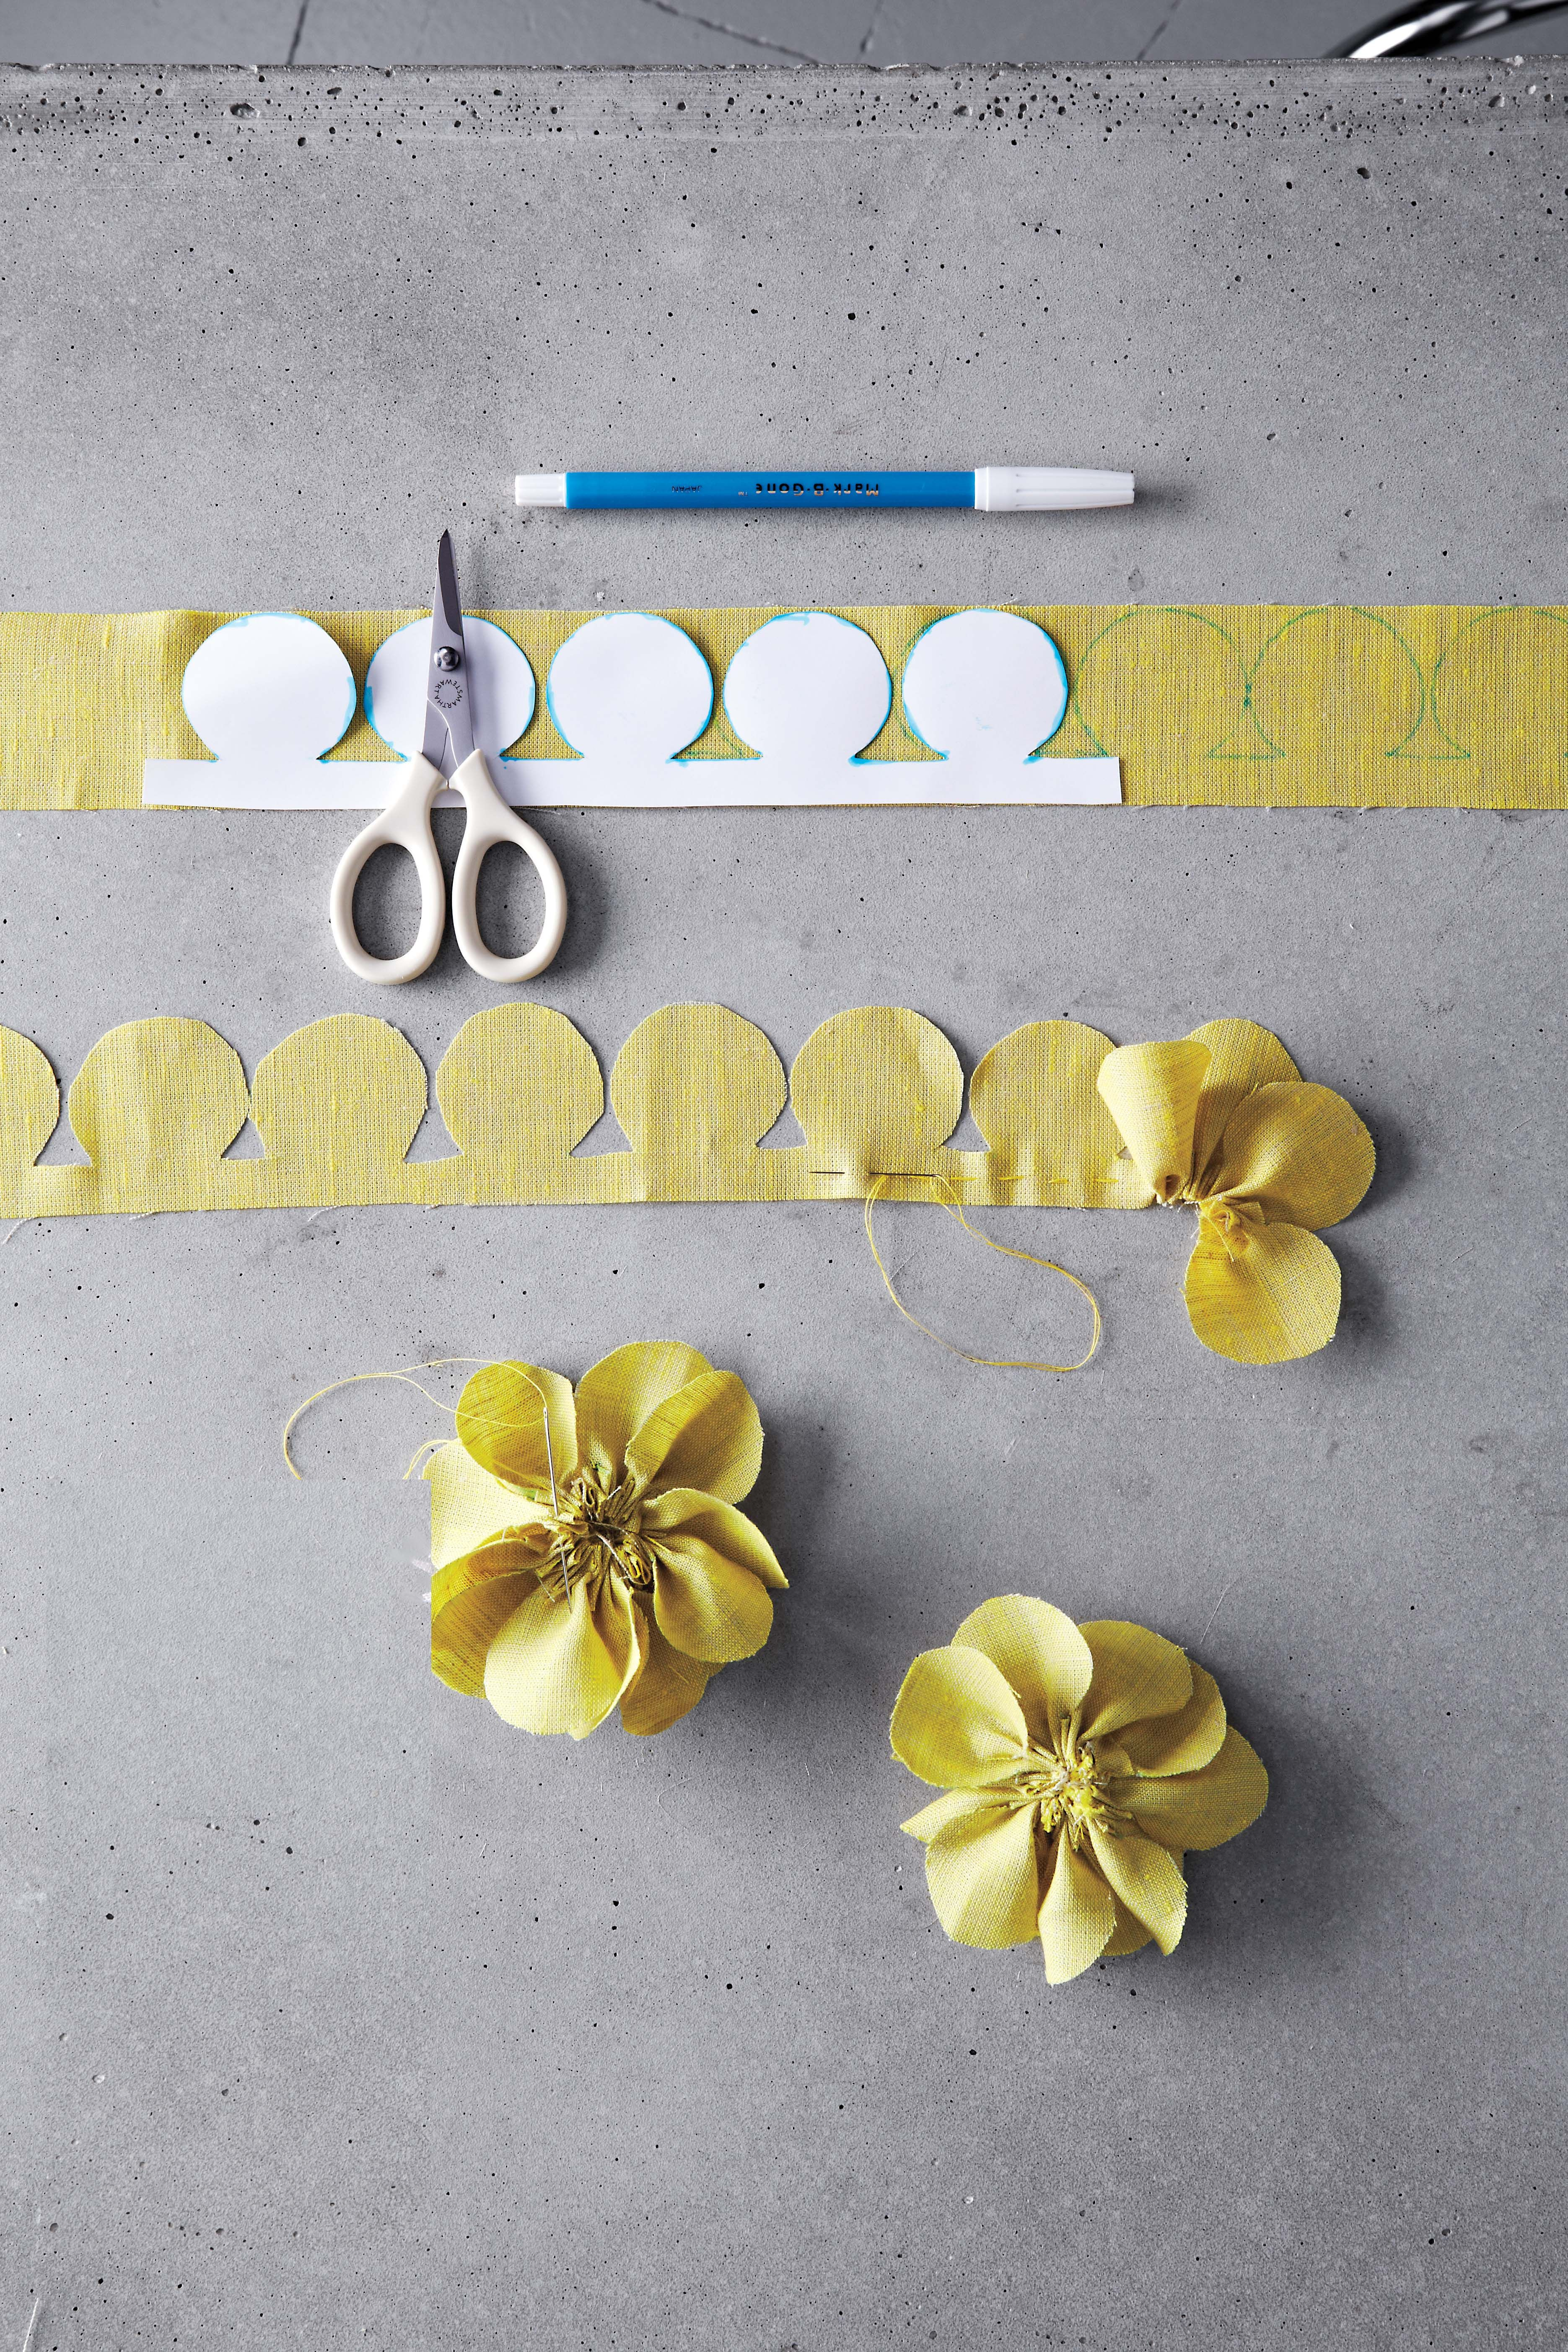 Uncategorized Diy Fabric Flower pansy and dahlia fabric flower tutorial flowers fabrics tutorial